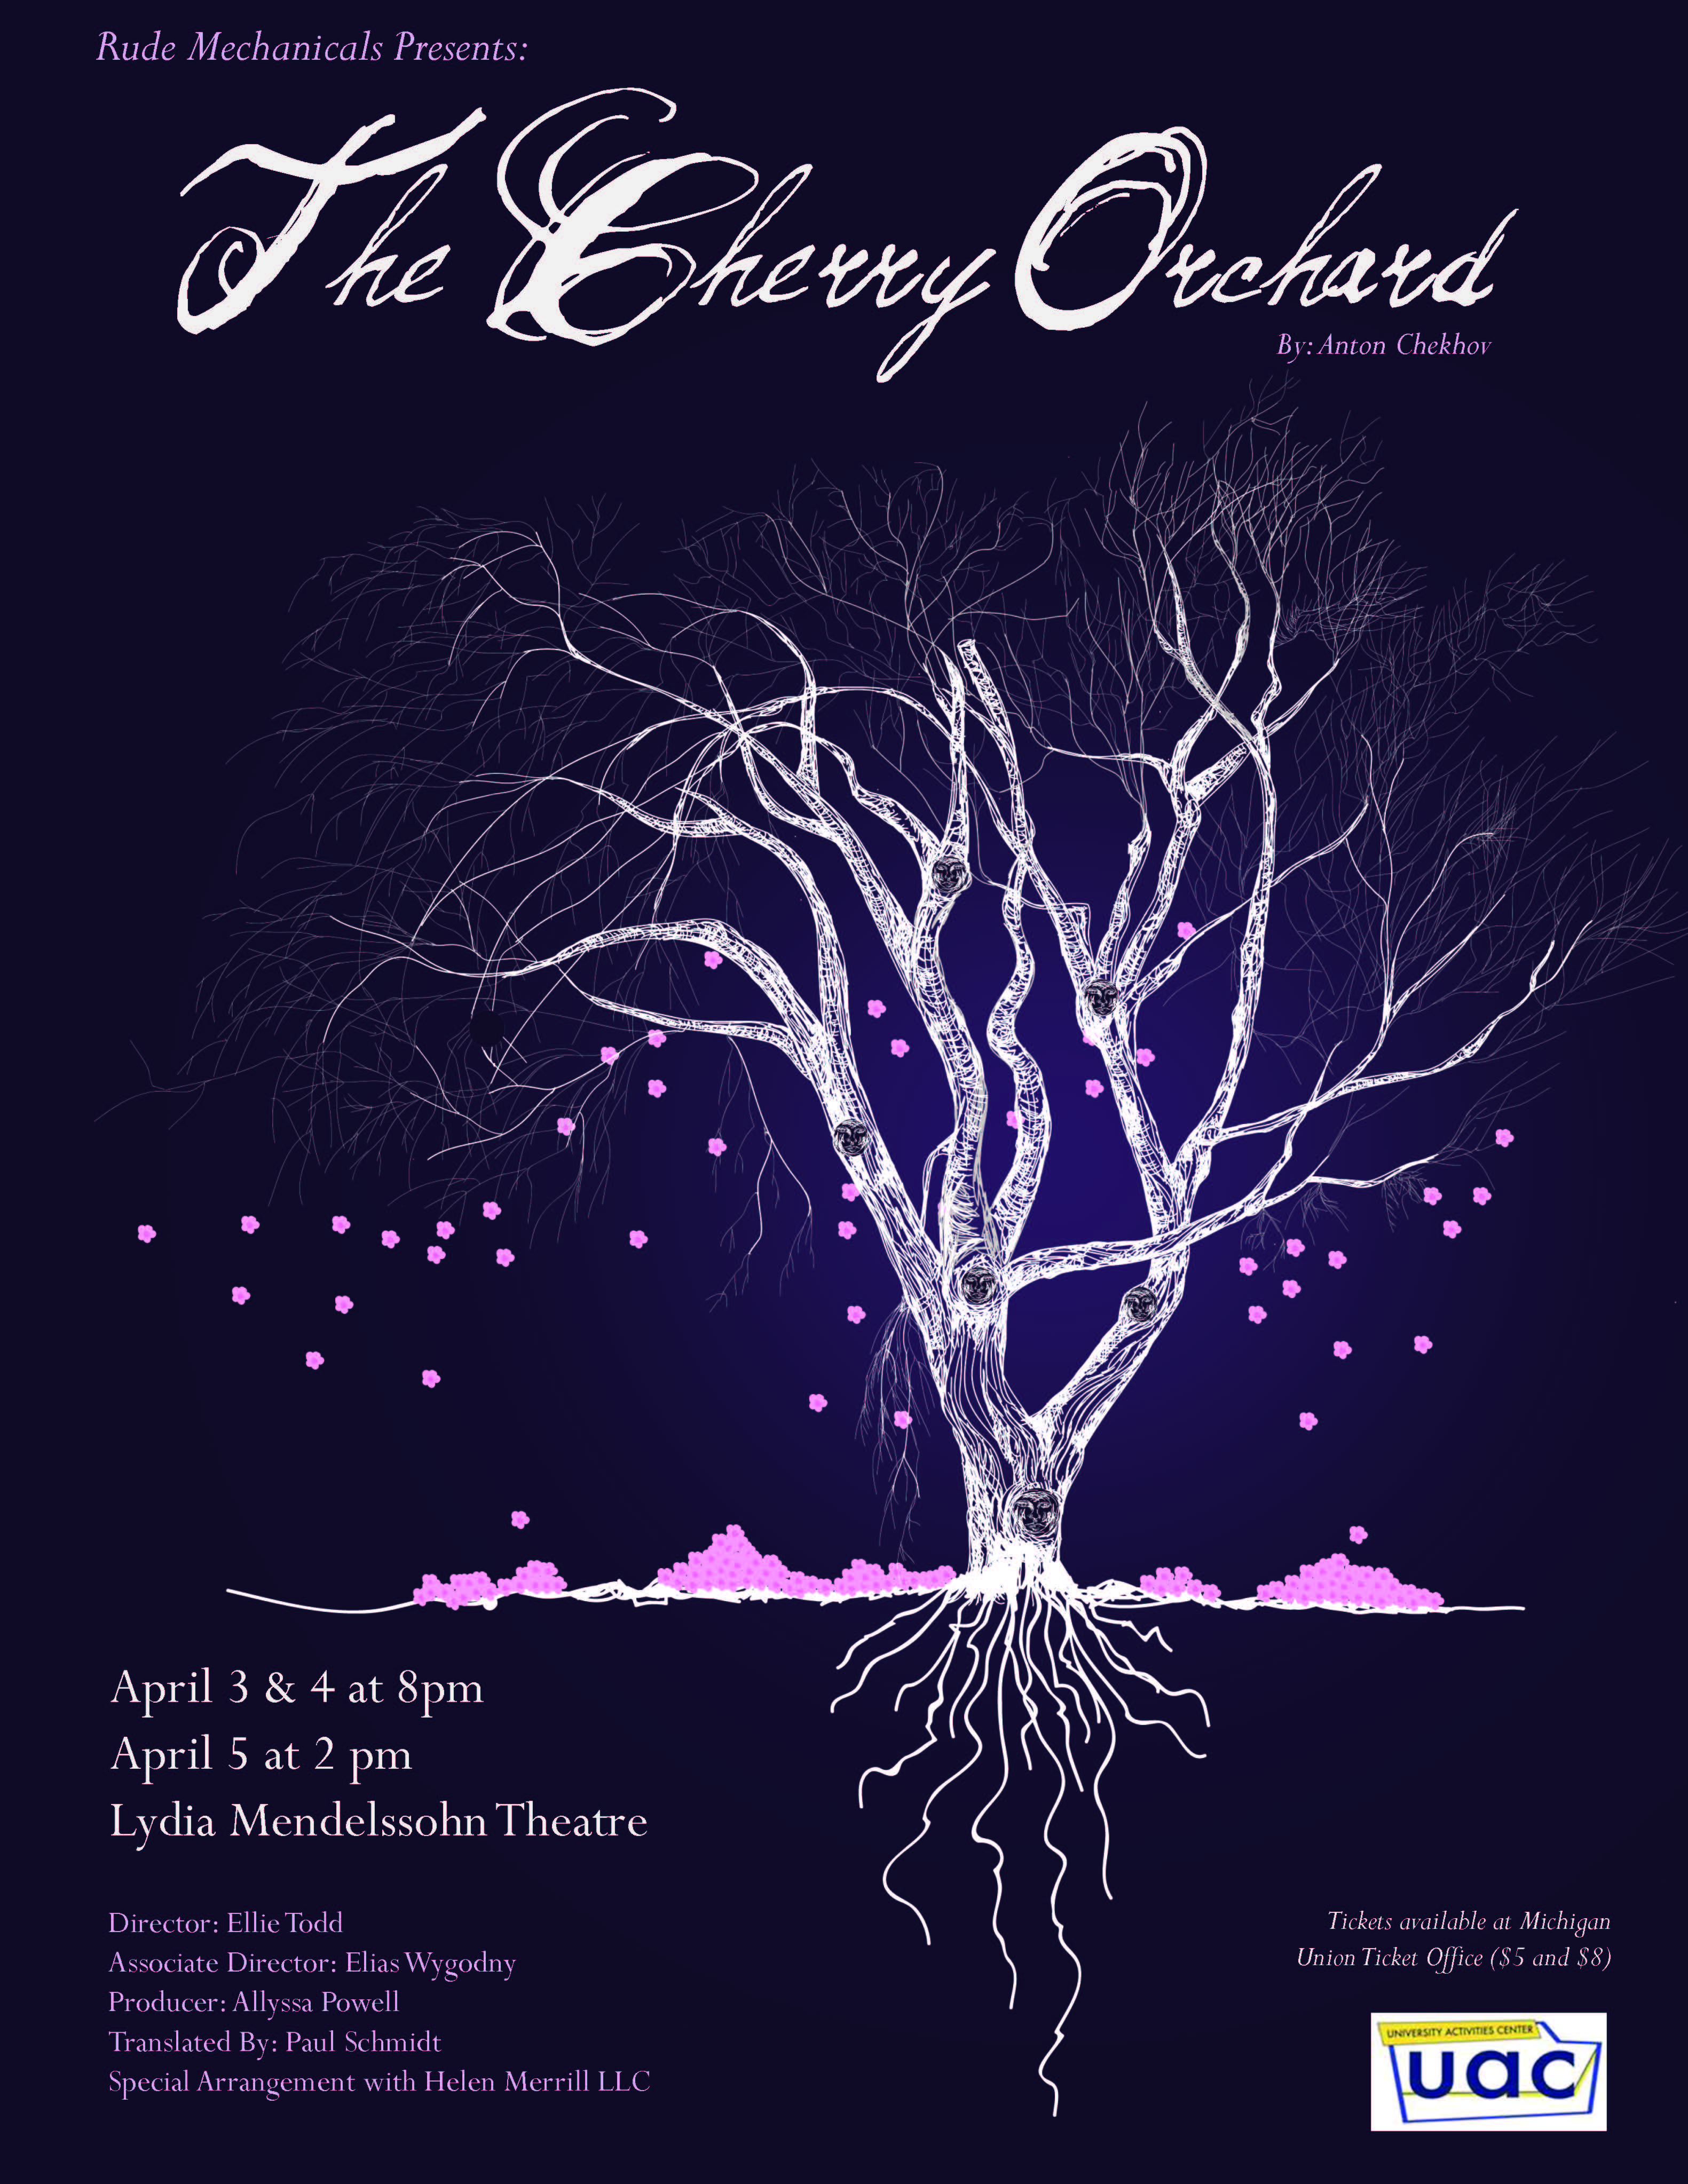 a chekhov the cherry orchard The cherry orchard was first produced by the moscow art theatre on chekhov's  last birthday, january 17, 1904 since that time it has become one of the most.